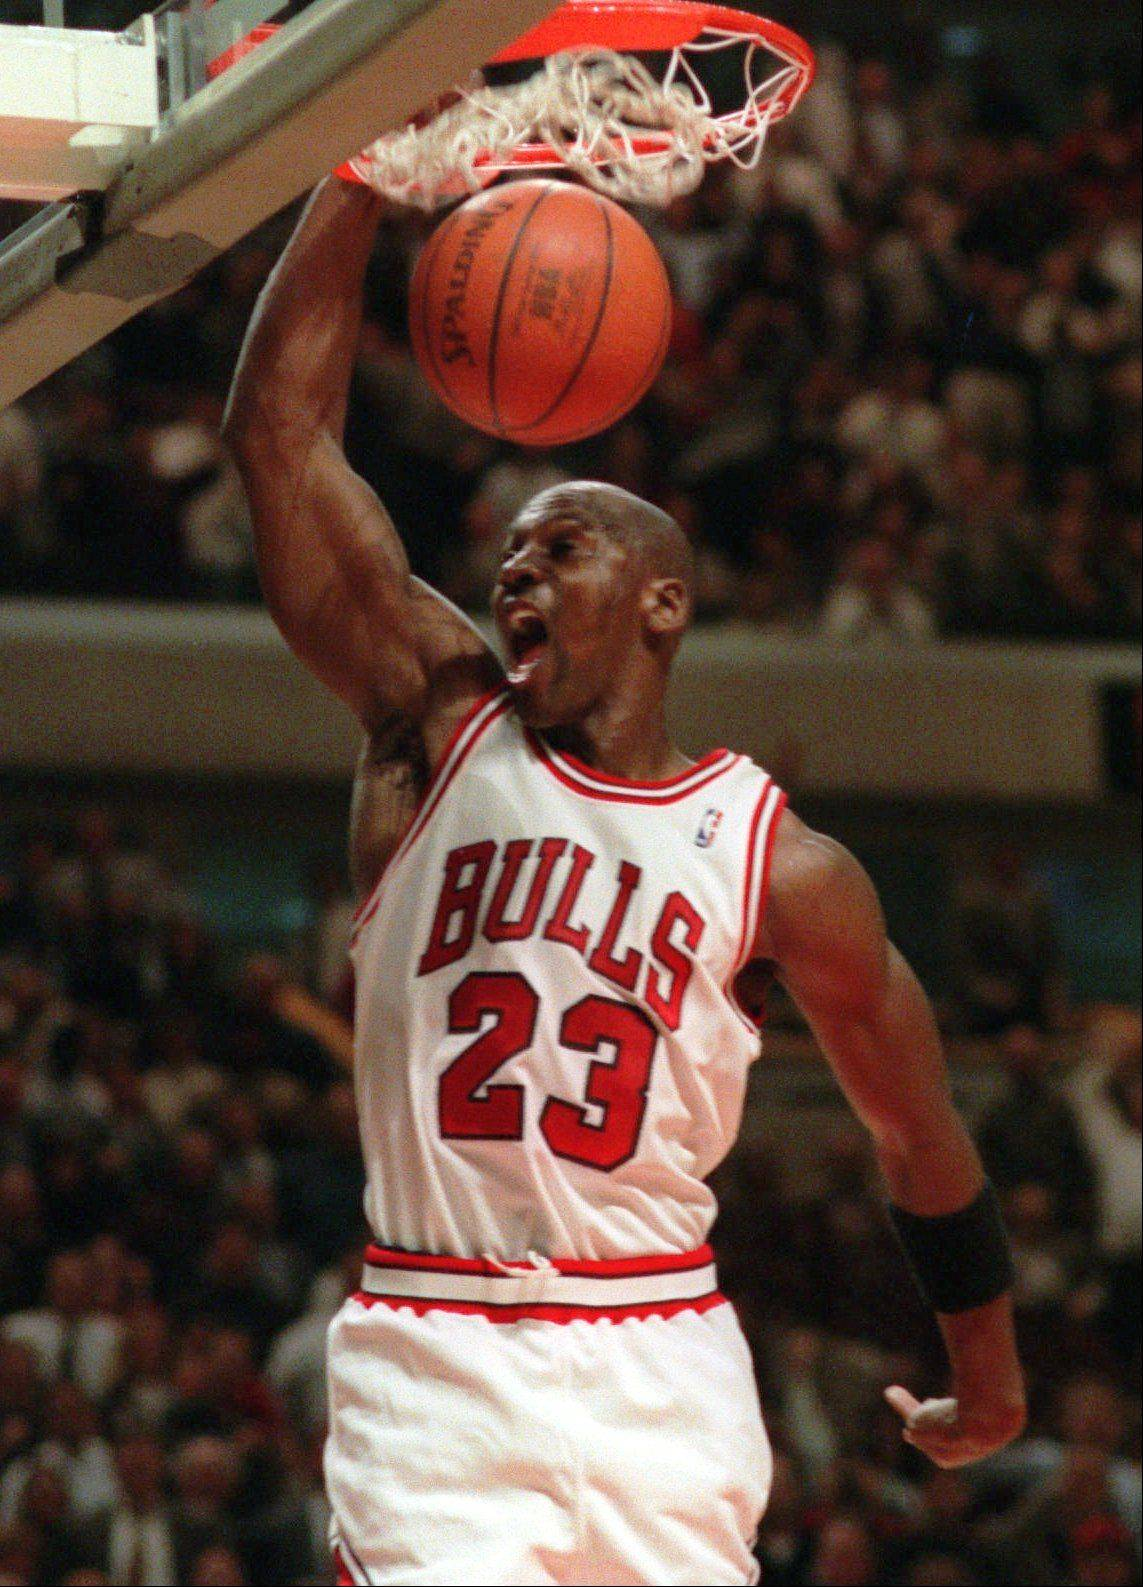 Michael Jordan slams the ball through the net during a Dec. 6, 1995, game against the New York Knicks in Chicago.